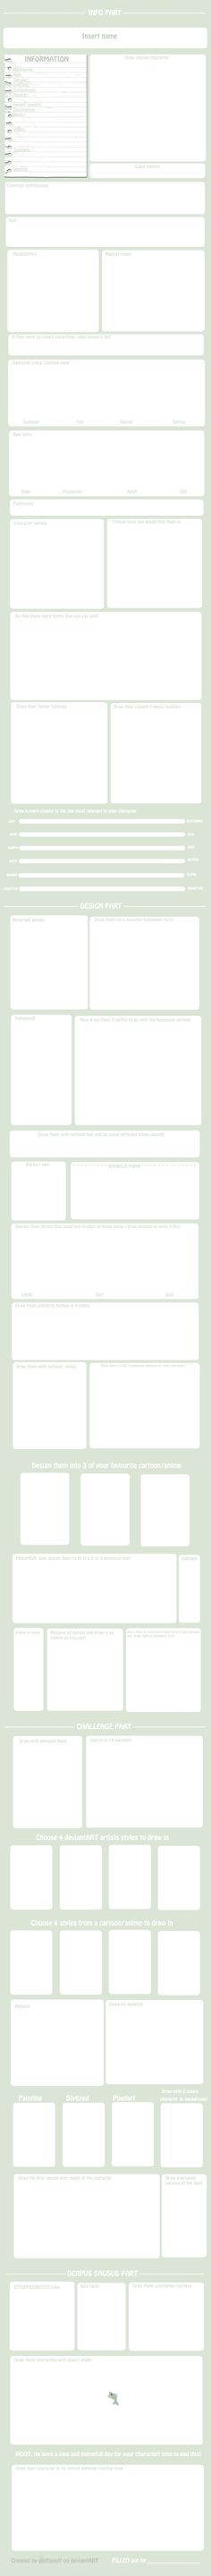 Ultimate OC meme Blank by griffsnuff.deviantart.com on @deviantART - Interesting things to think about.. ouo